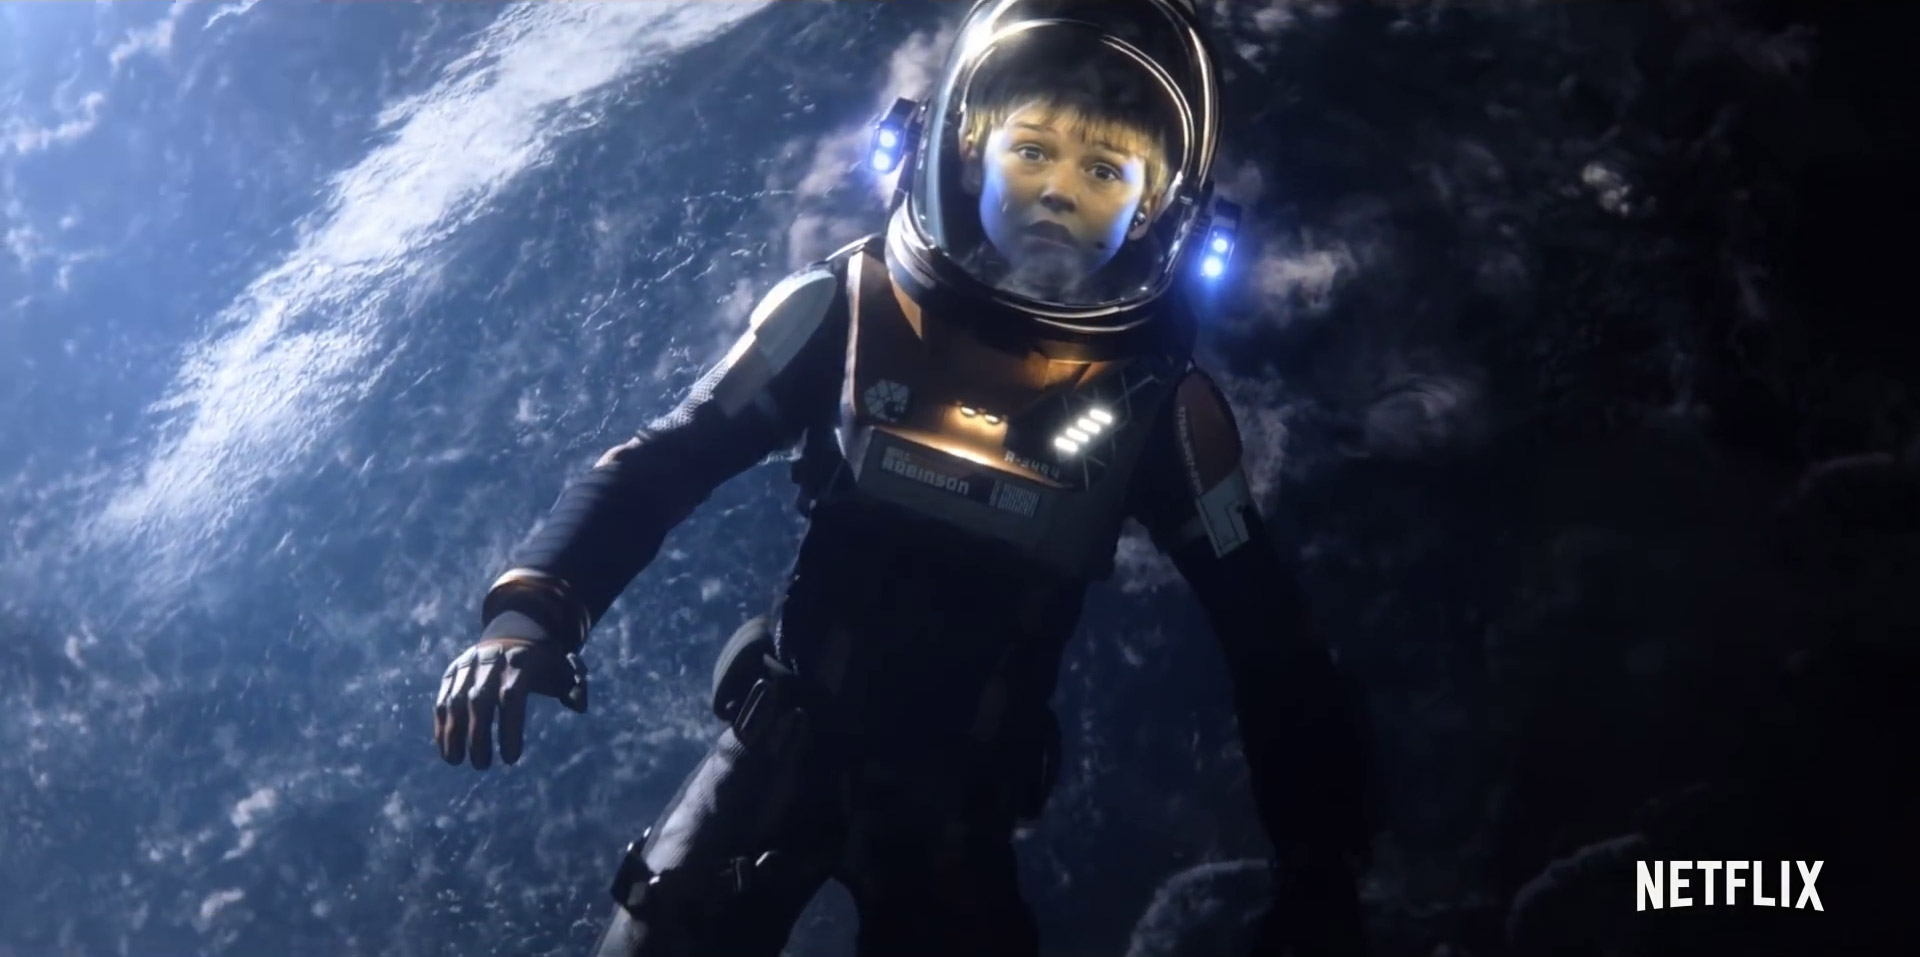 Lost In Space Reboot Trailer from Netflix